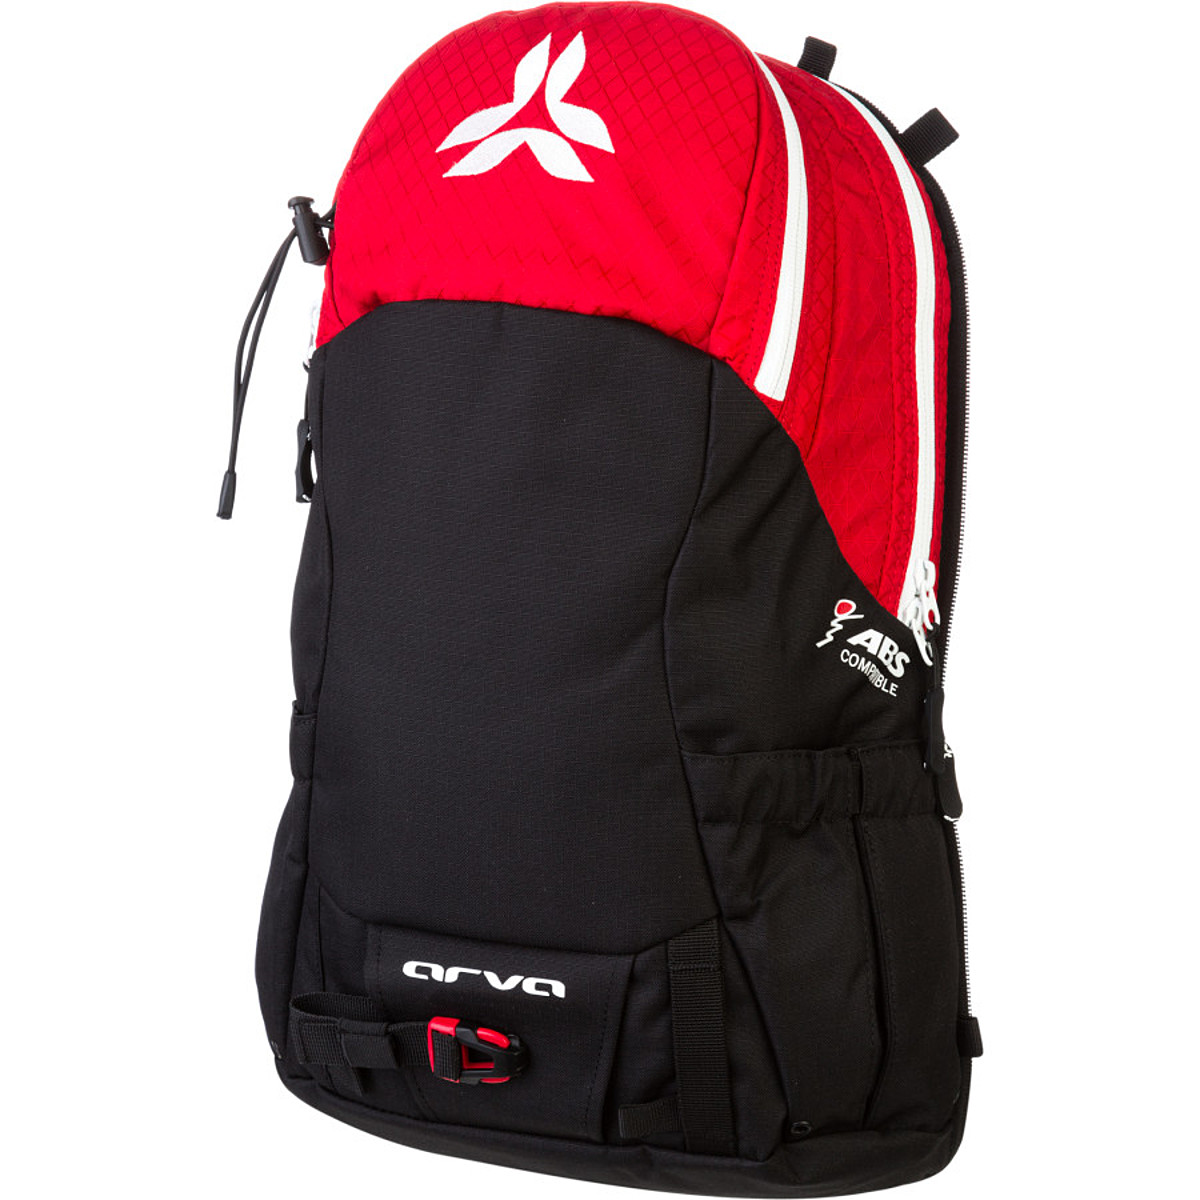 photo: Arva XPowder avalanche airbag pack